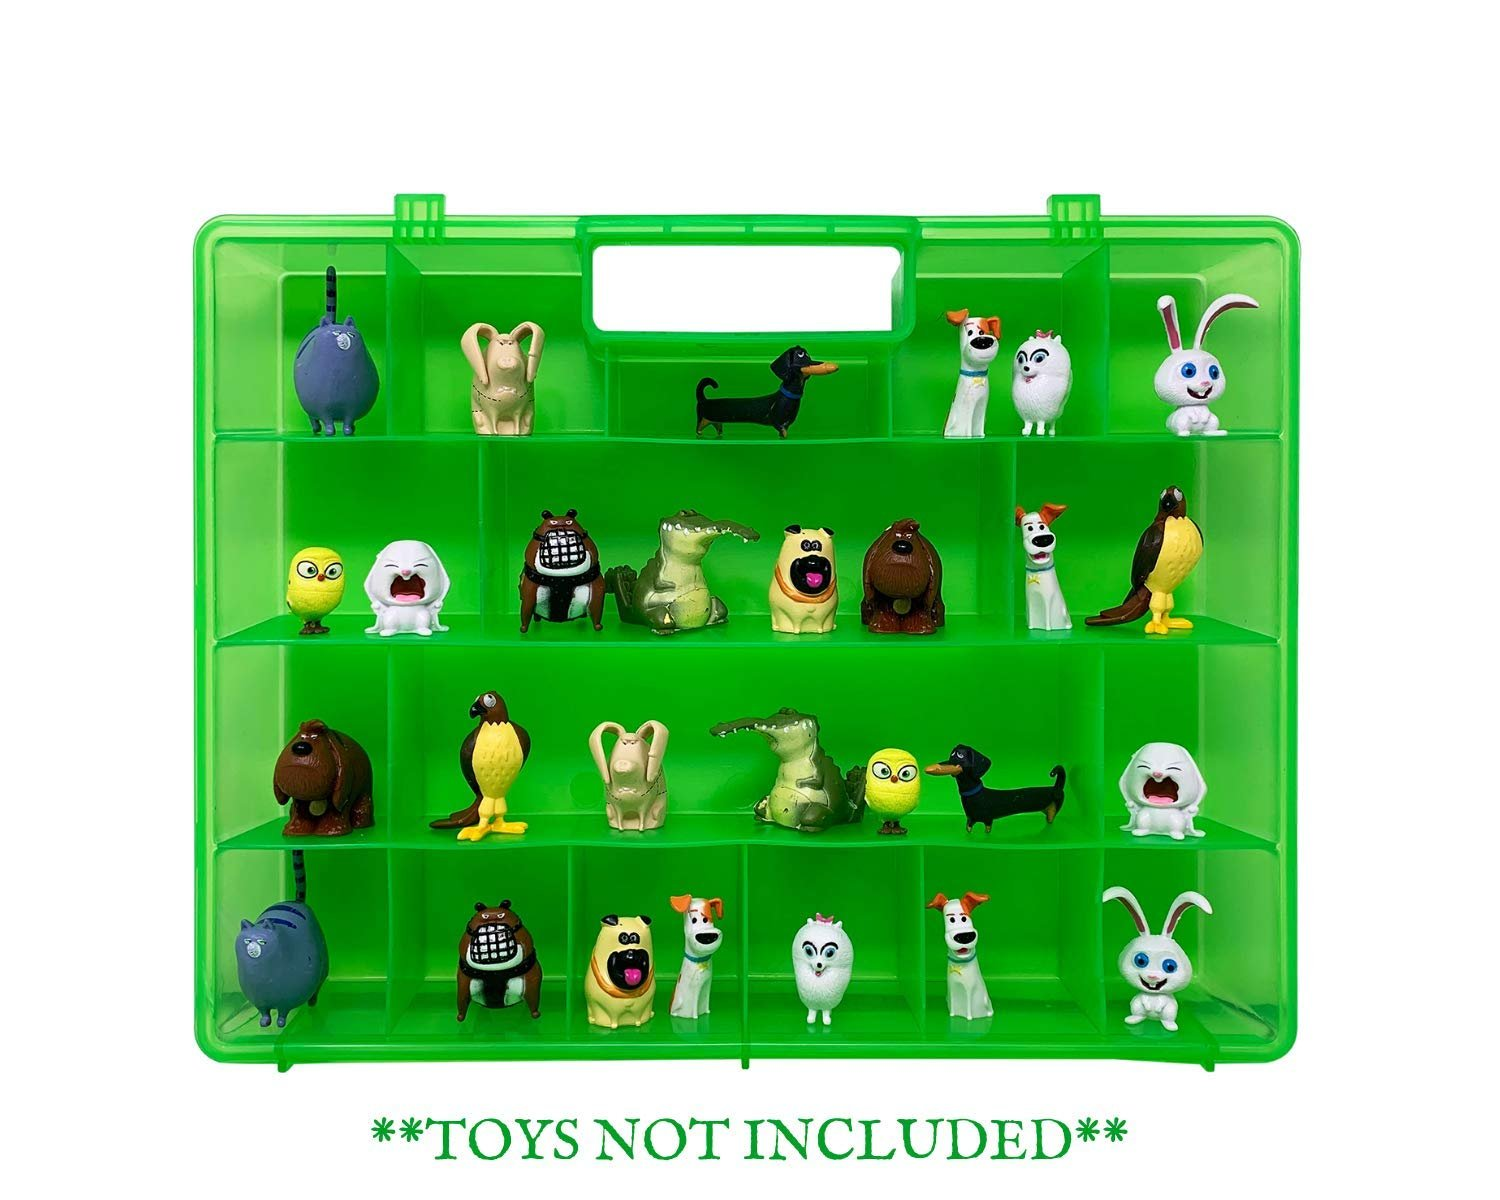 Life Made Better Slim & Light Green Display/Carry-Along Case for Kids Compatible with Secret Life of Pets Figures, Made by LMB